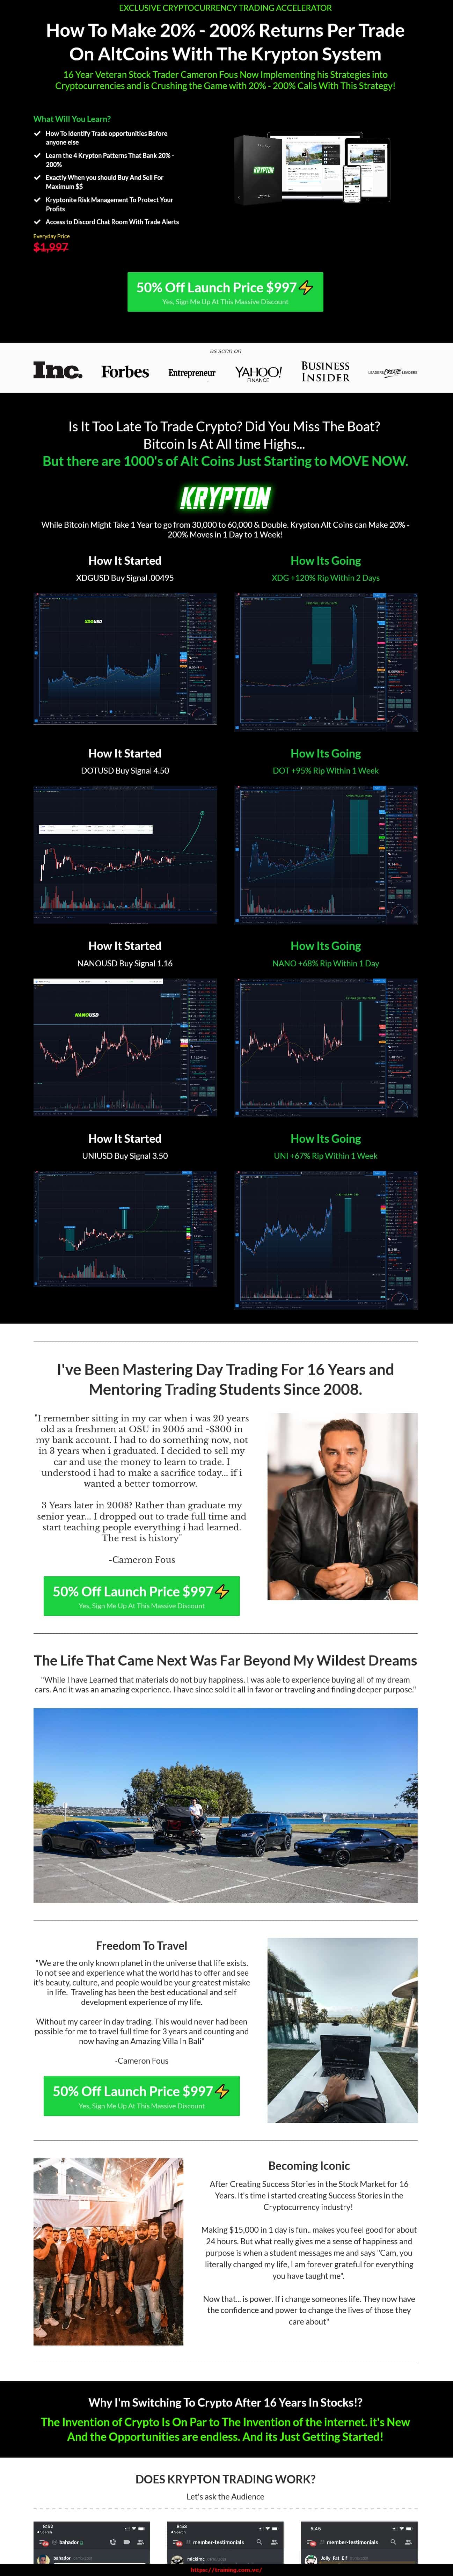 Krypton Training by Cameron Fous sales page